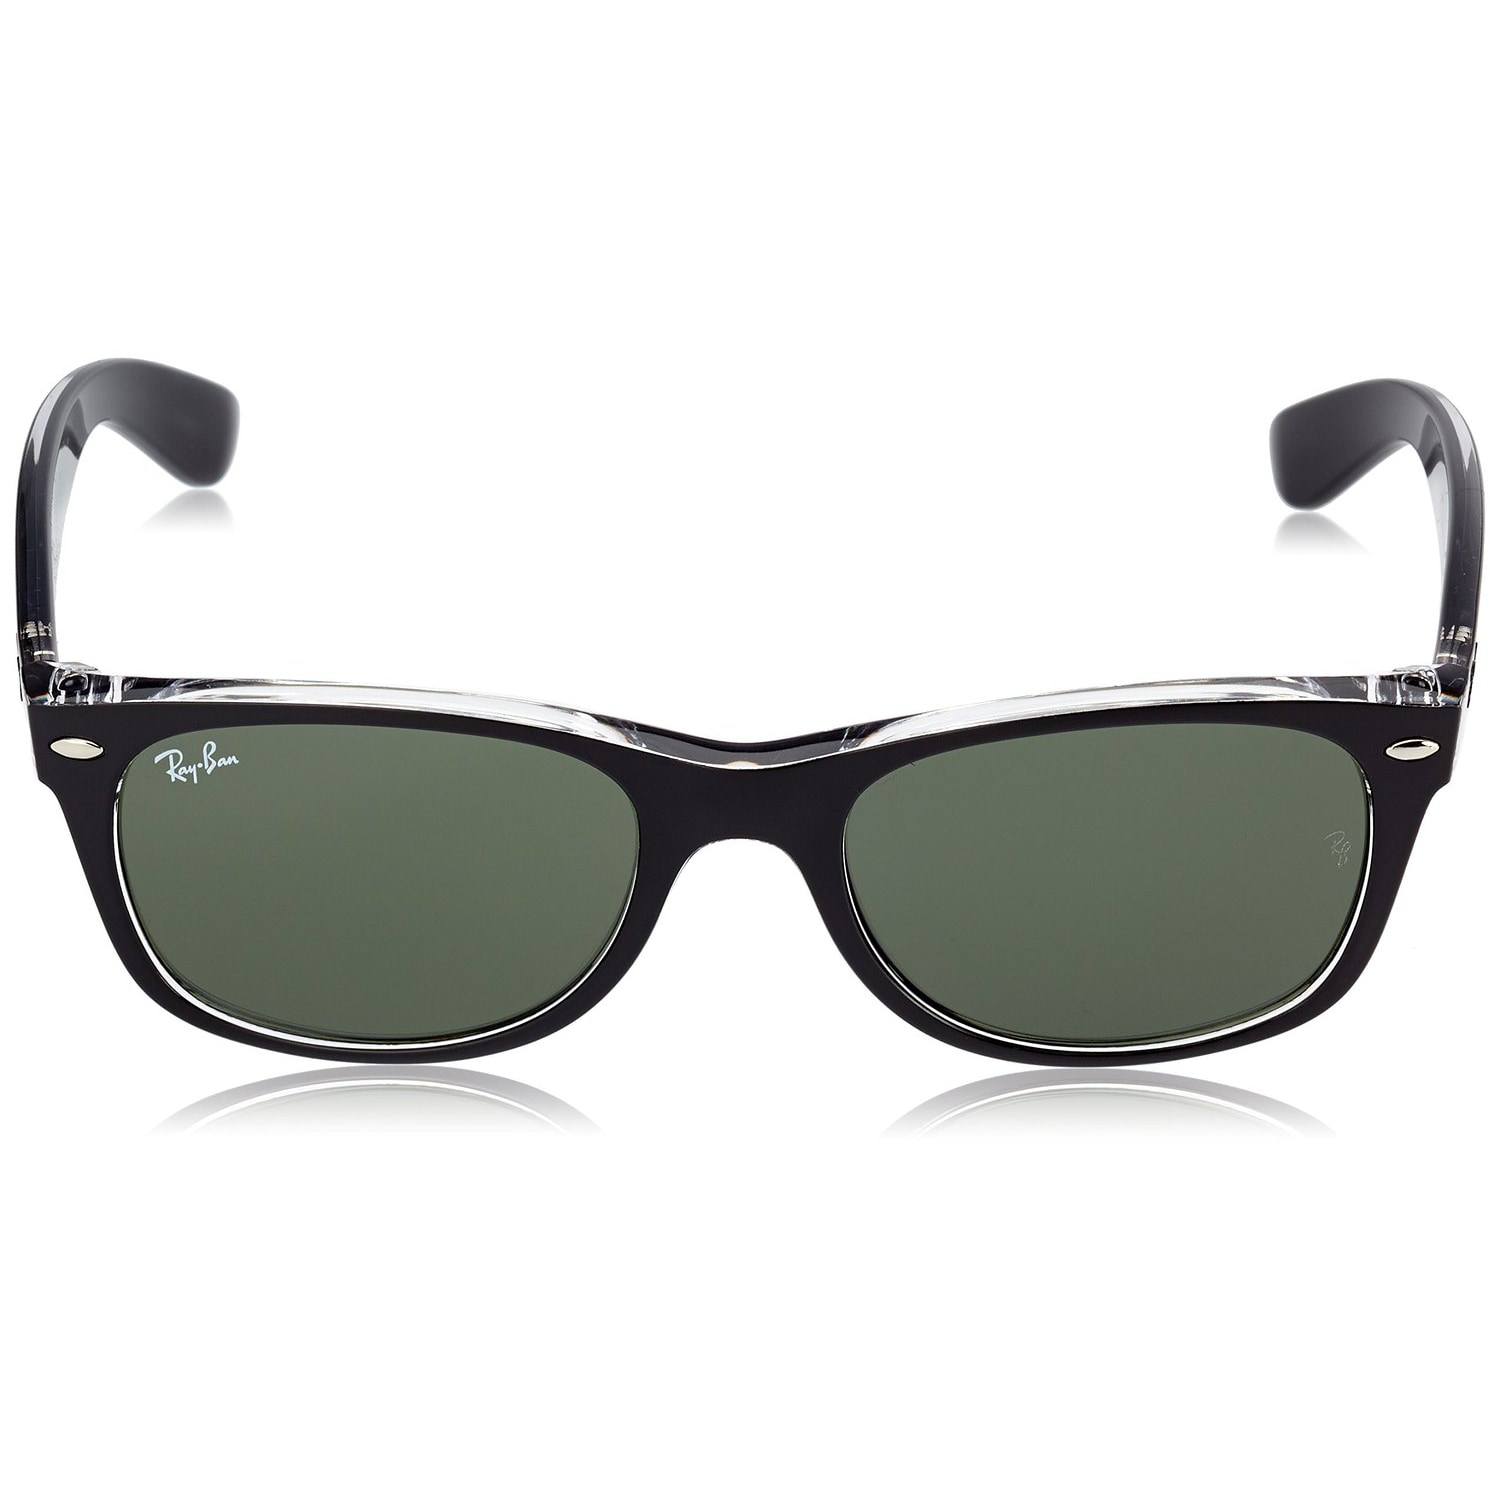 9a3f177577 Shop Ray-Ban RB2132 New Wayfarer Color Mix Sunglasses Transparent Black   Green Classic 55mm - Black - Free Shipping Today - Overstock - 9922384